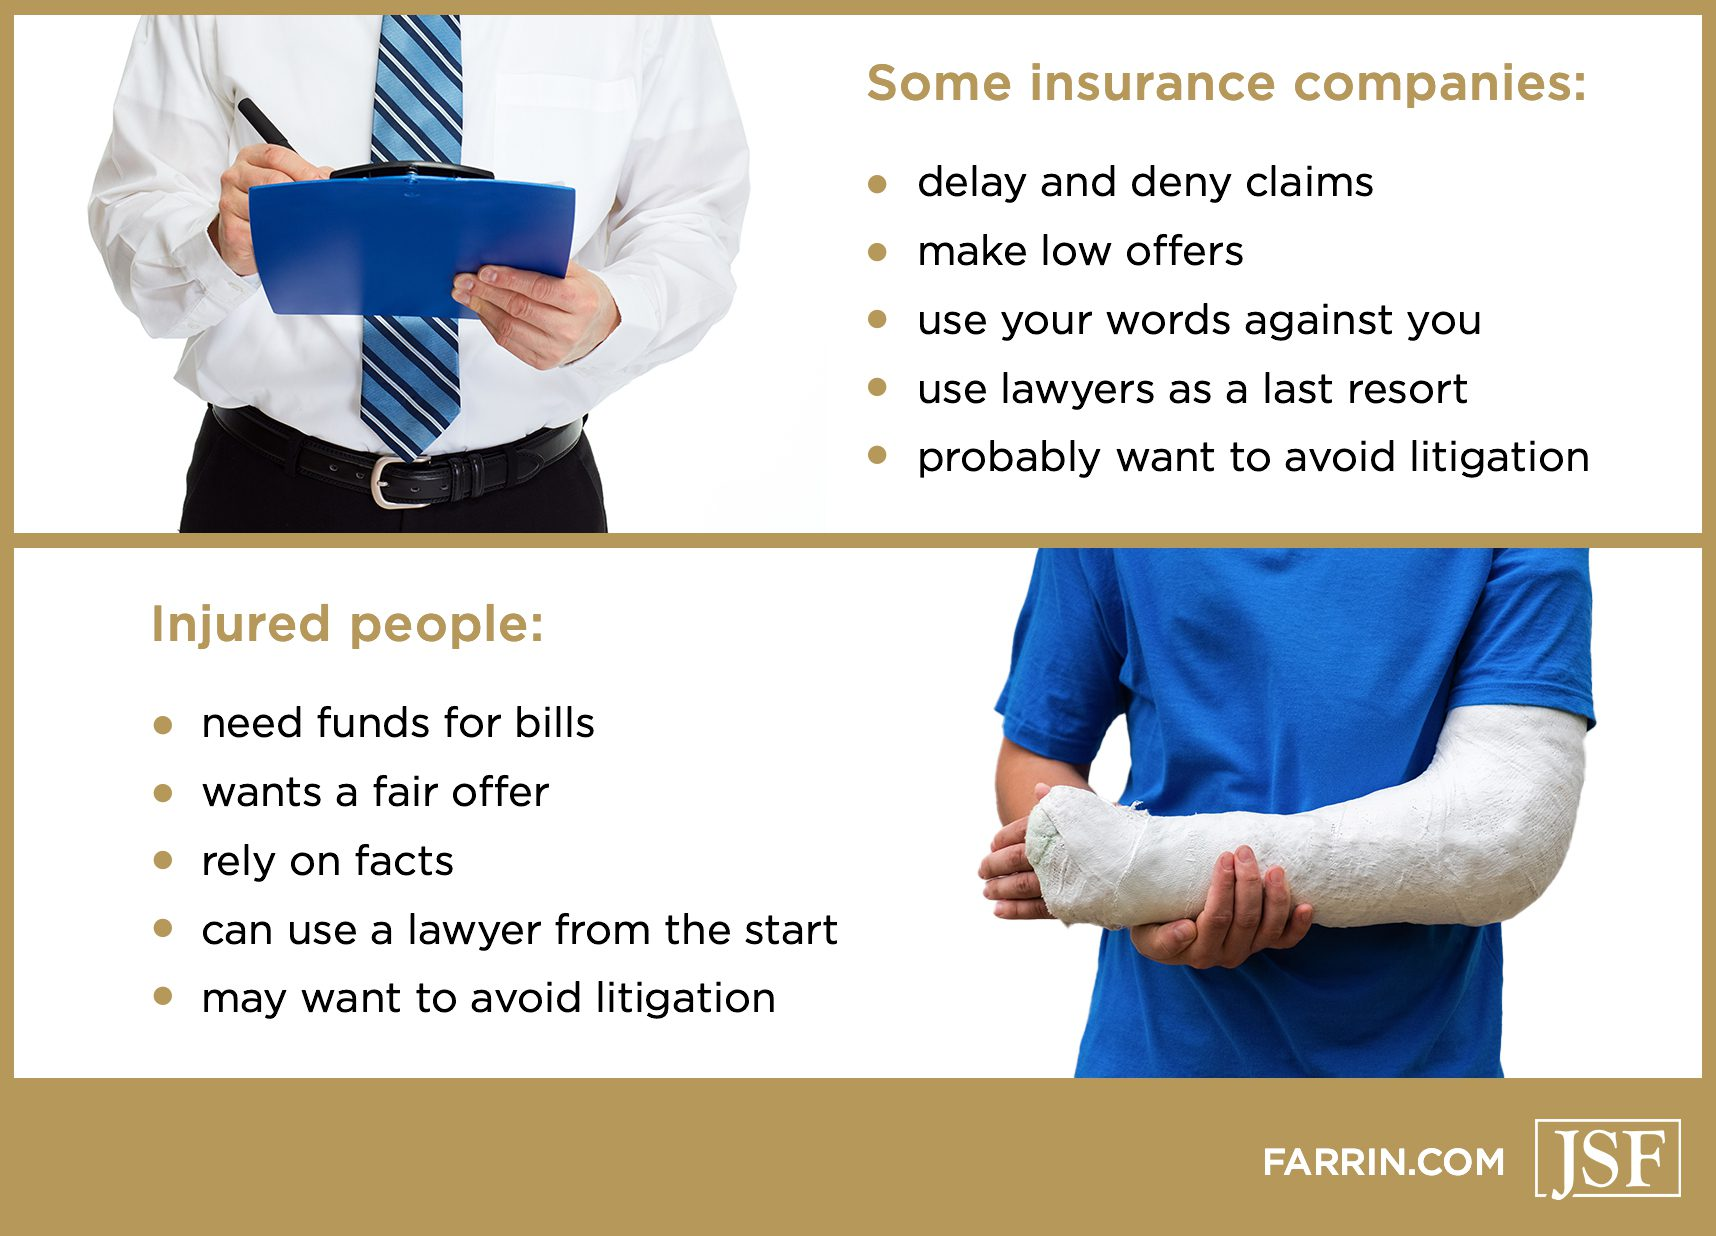 The contrast between insurance company and injury person motives